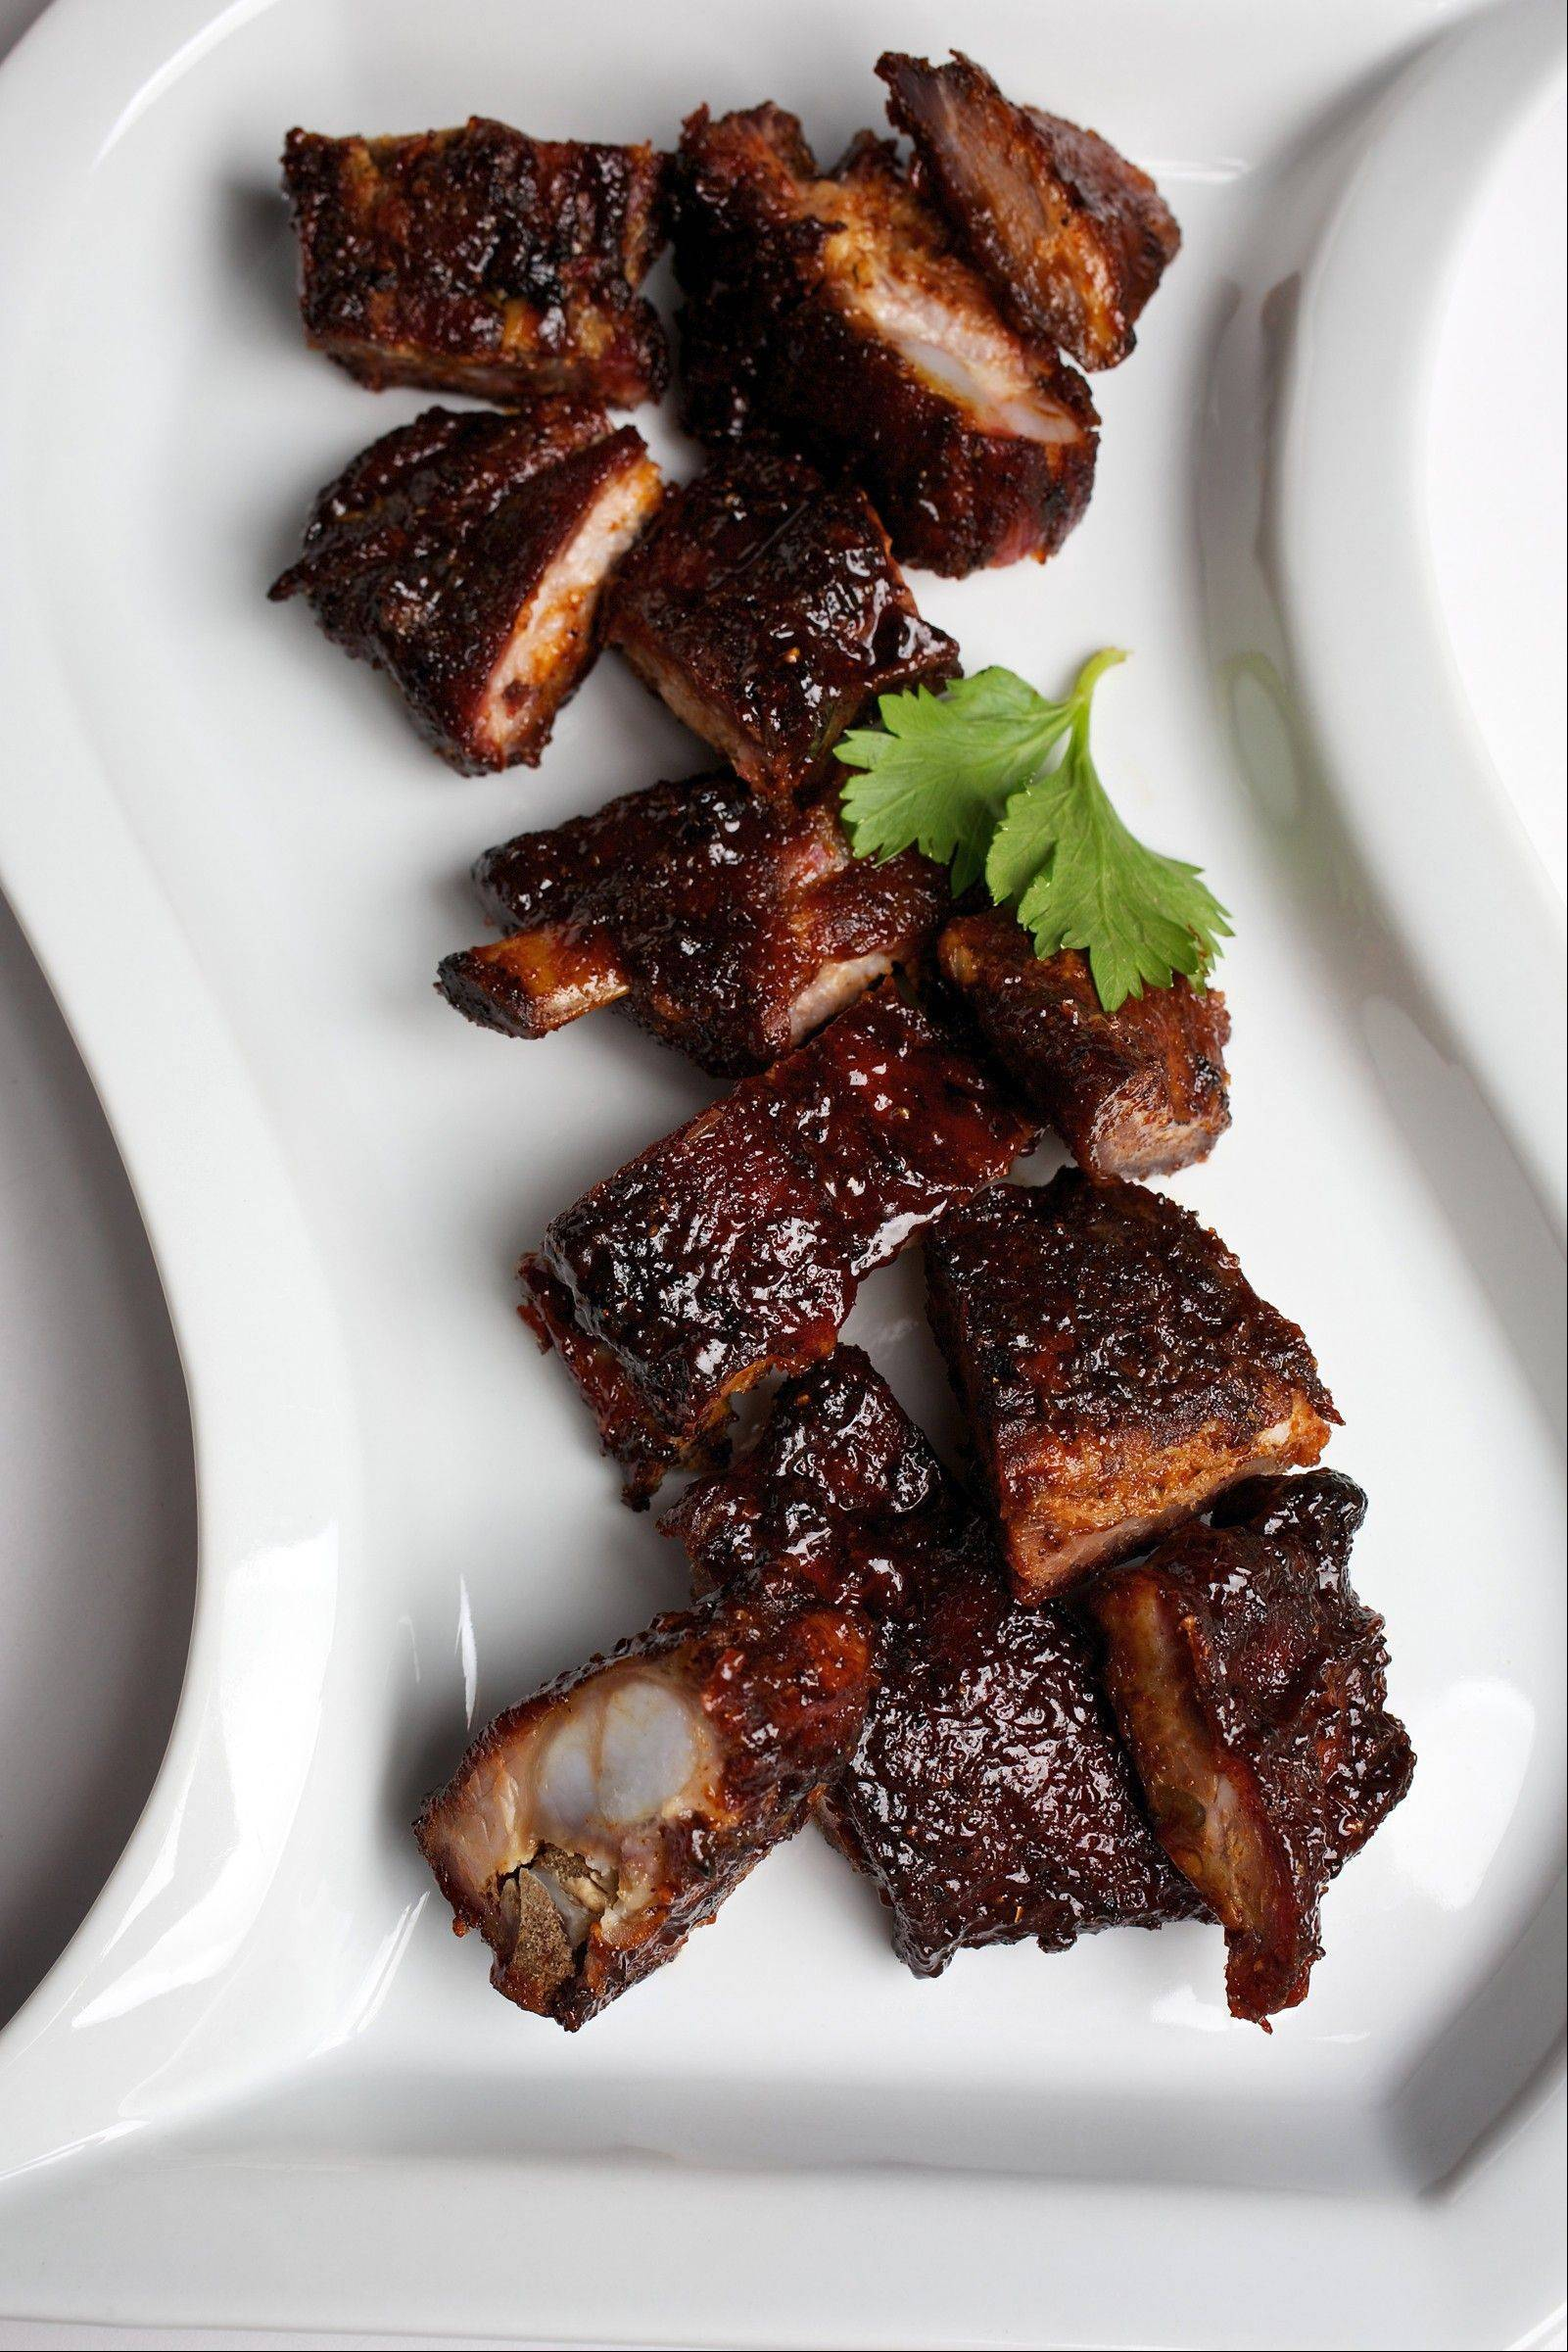 While Chicago is home to several four-star fine dining restaurants, it also boasts some of the best smoked rib tips in the country.